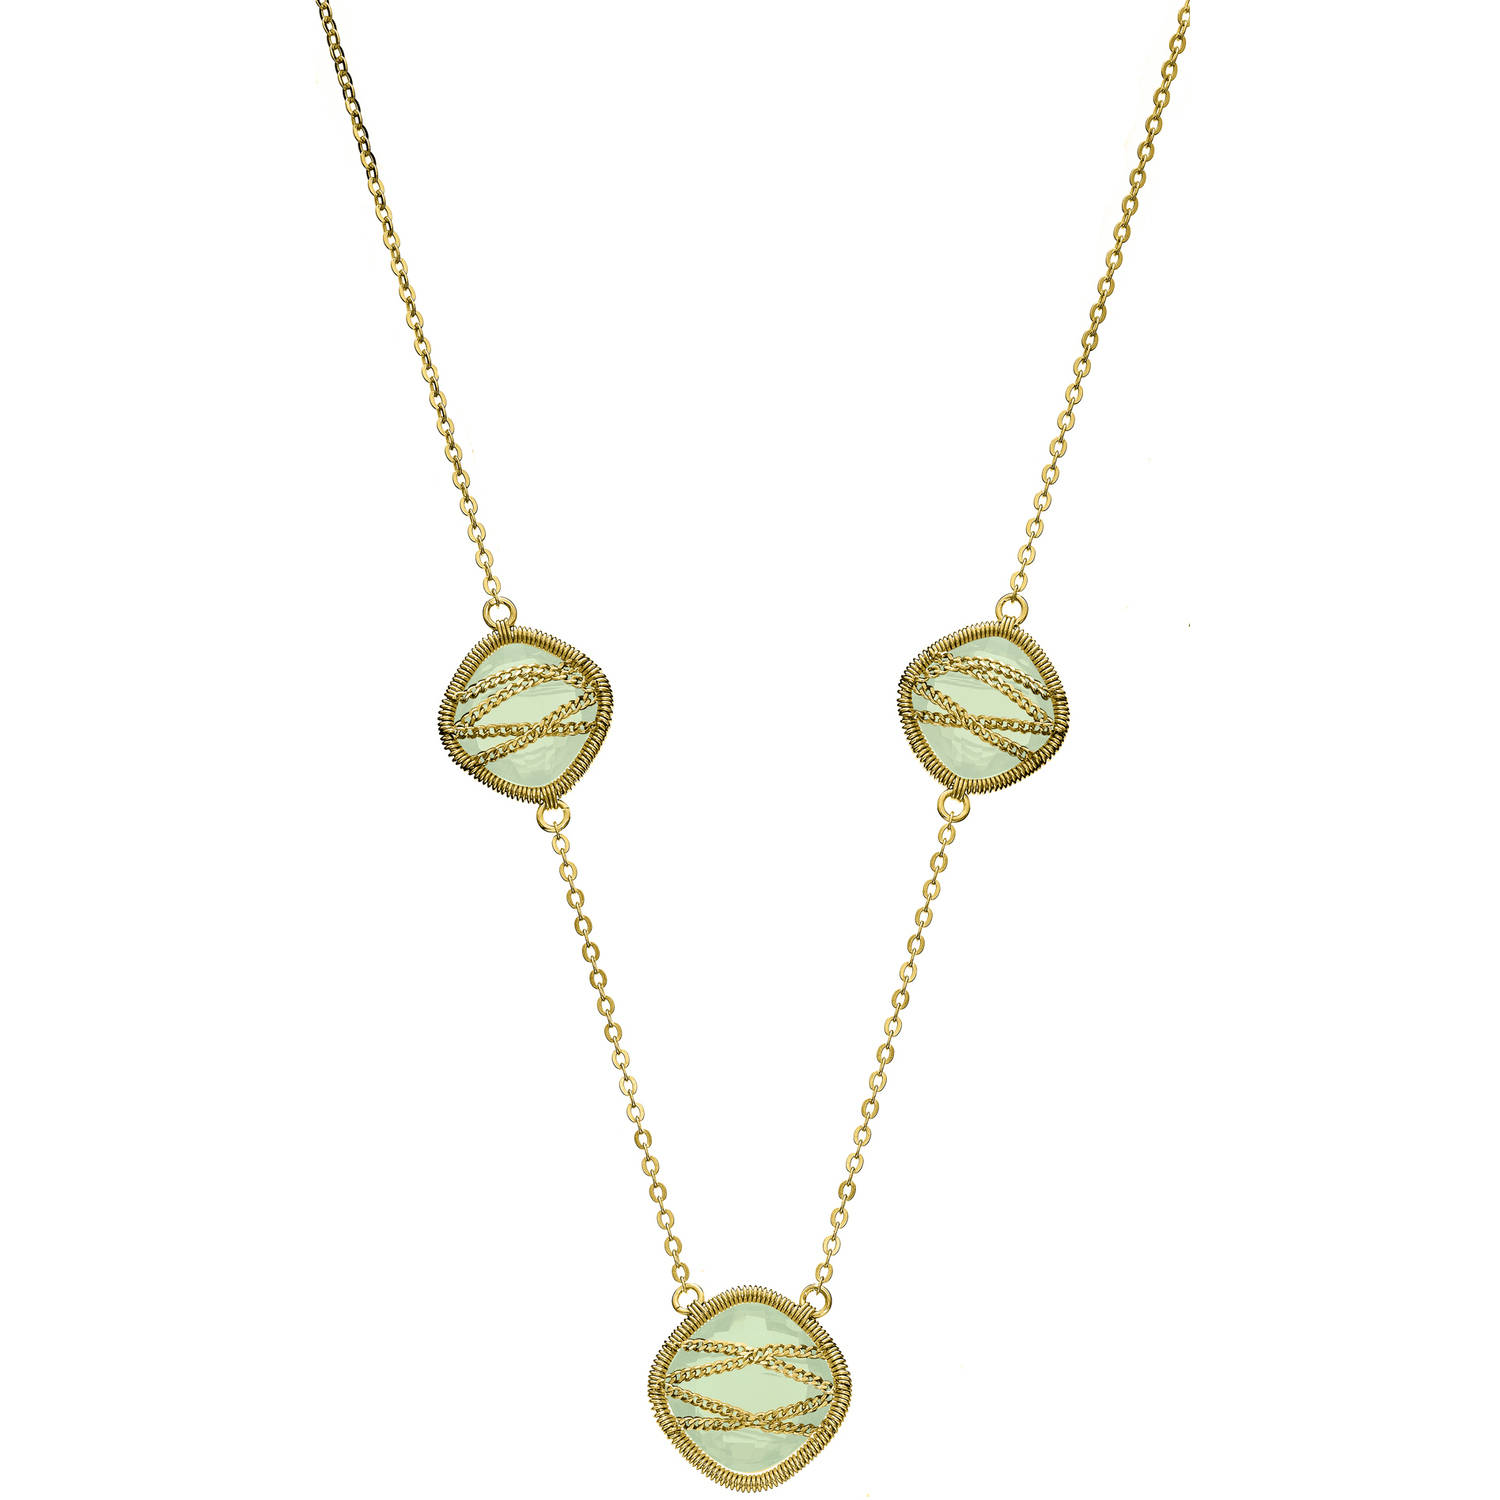 5th & Main 18kt Gold over Sterling Silver Hand-Wrapped Triple-Squared Chalcedony Stone Necklace by Generic